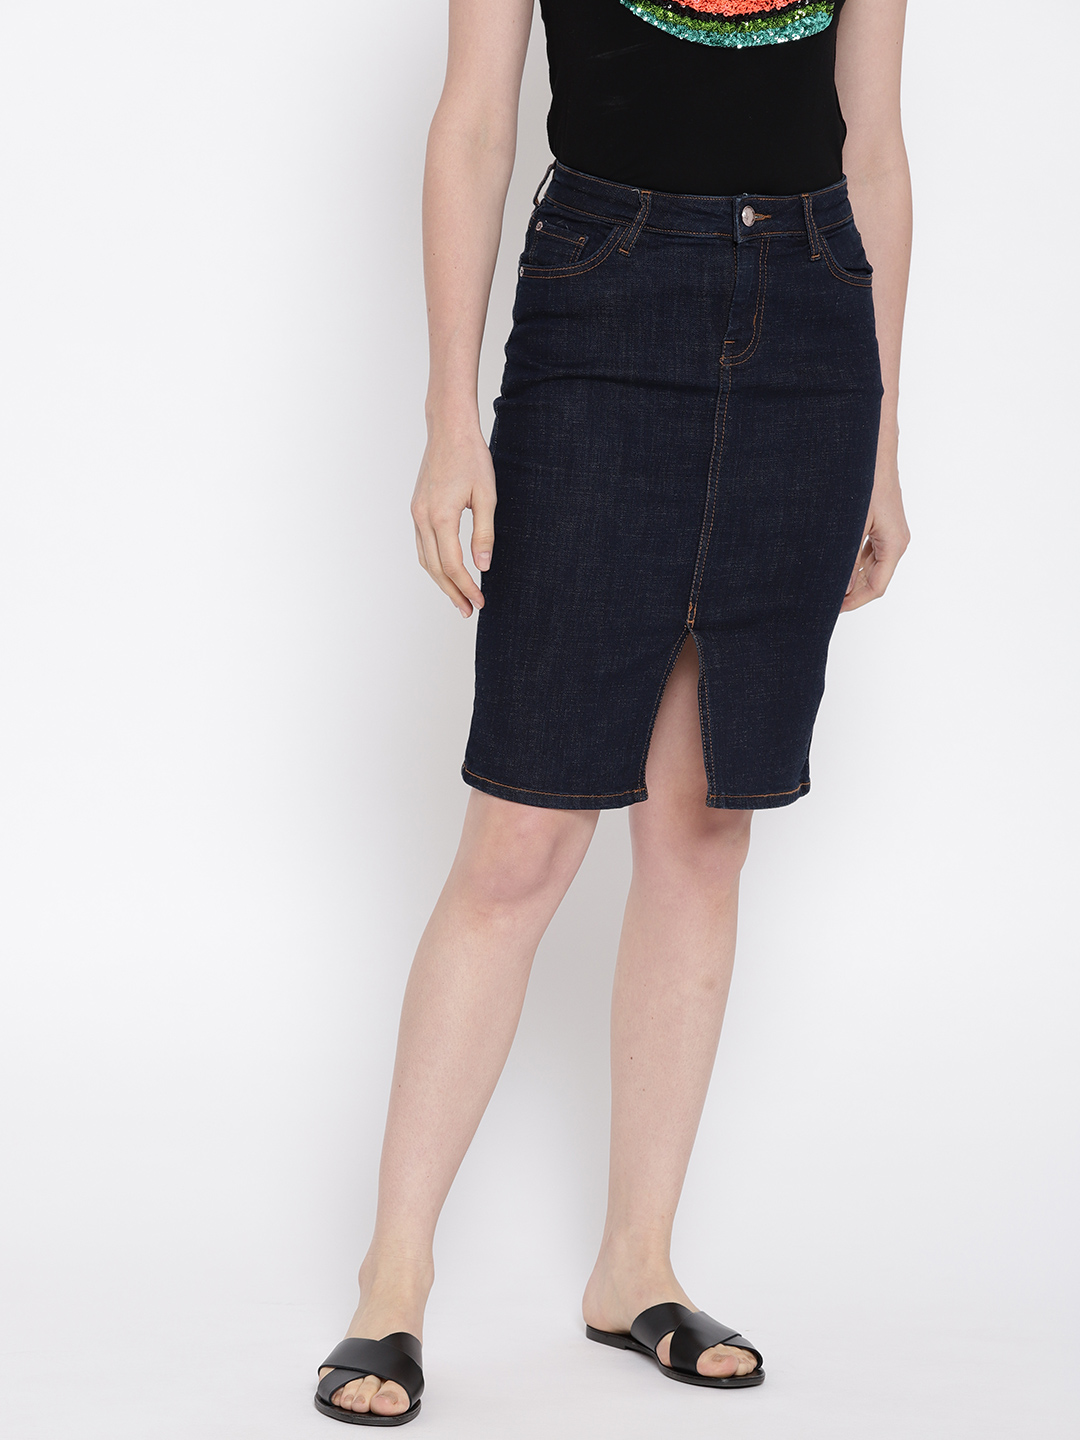 MANGO Women Navy Blue Solid Denim Pencil Skirt Price in India